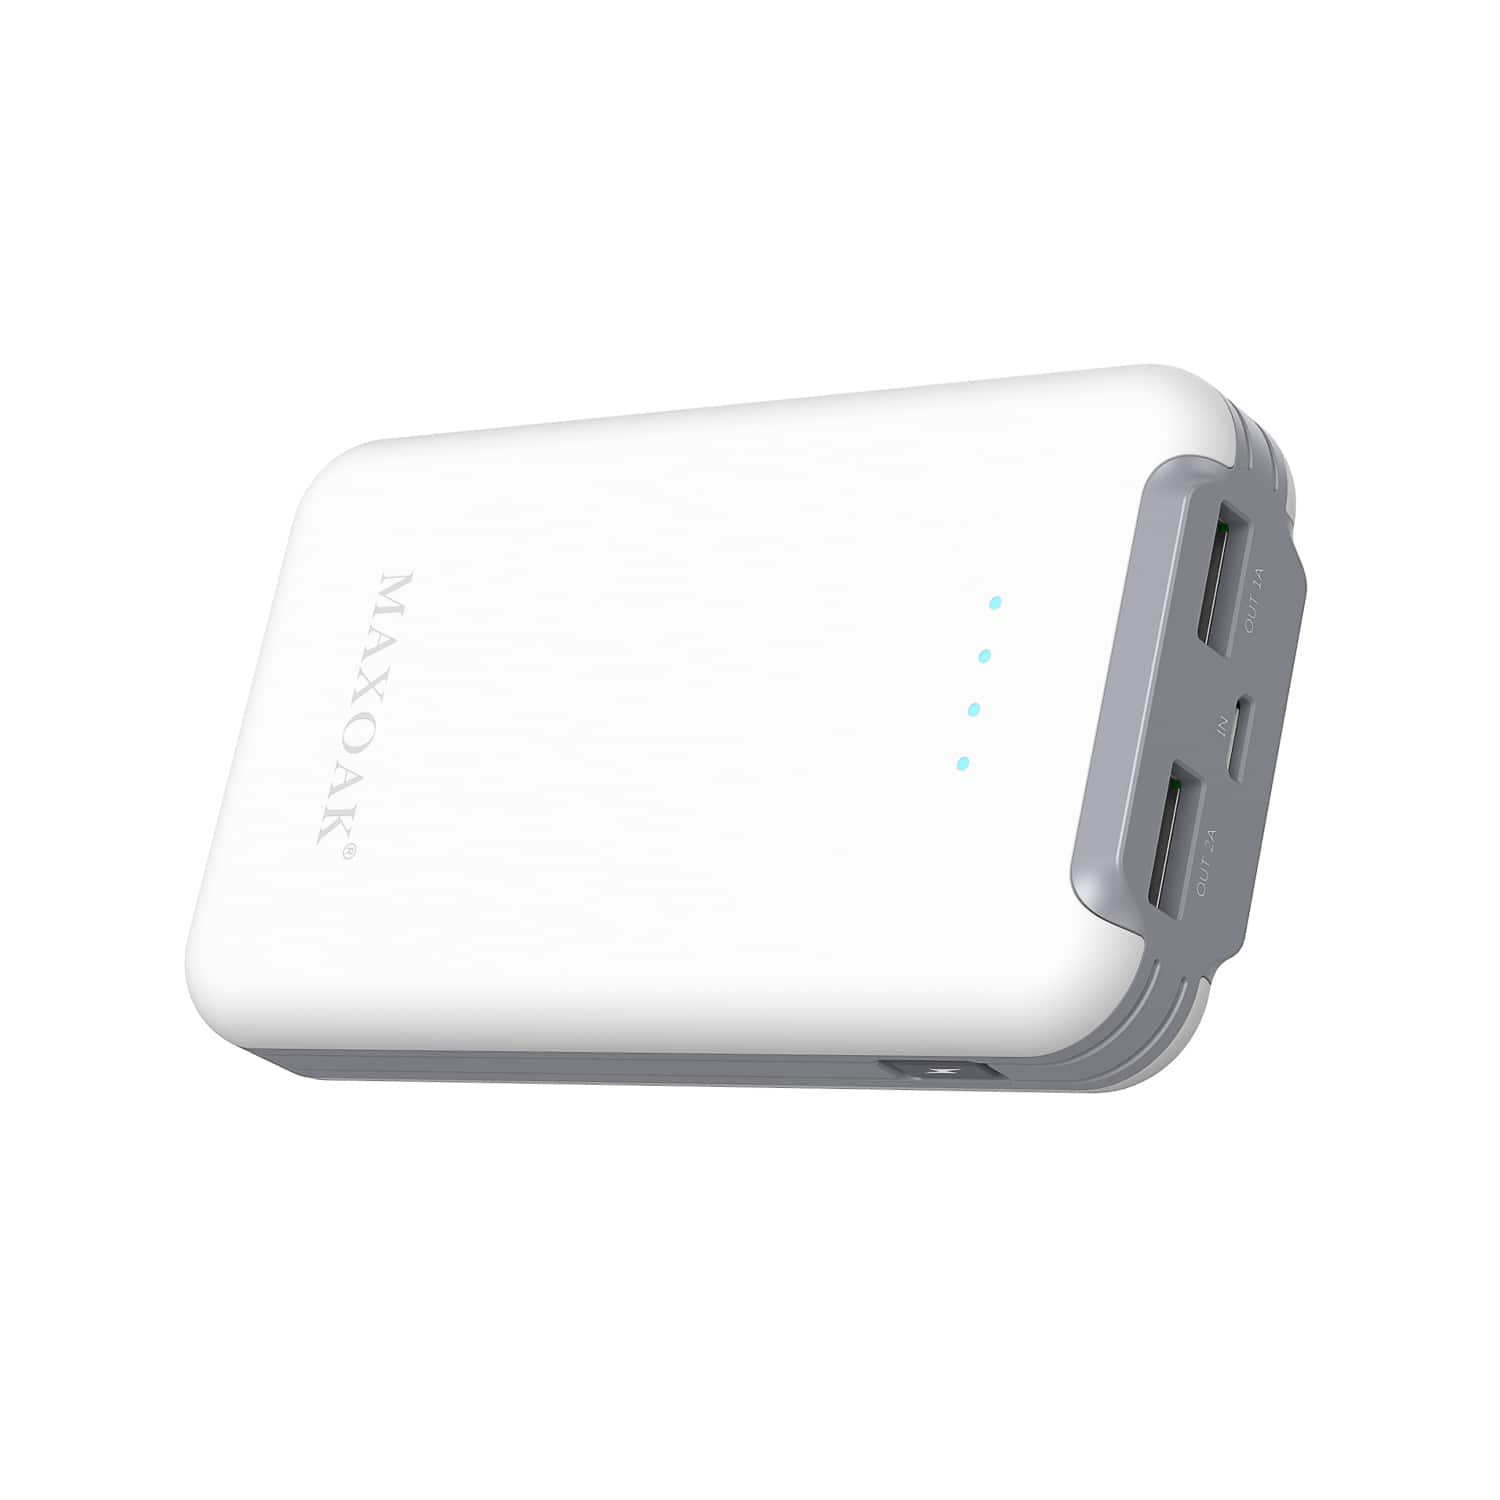 MAXOAK 10500mAh Portable Power Bank $15.89 AC + FSSS